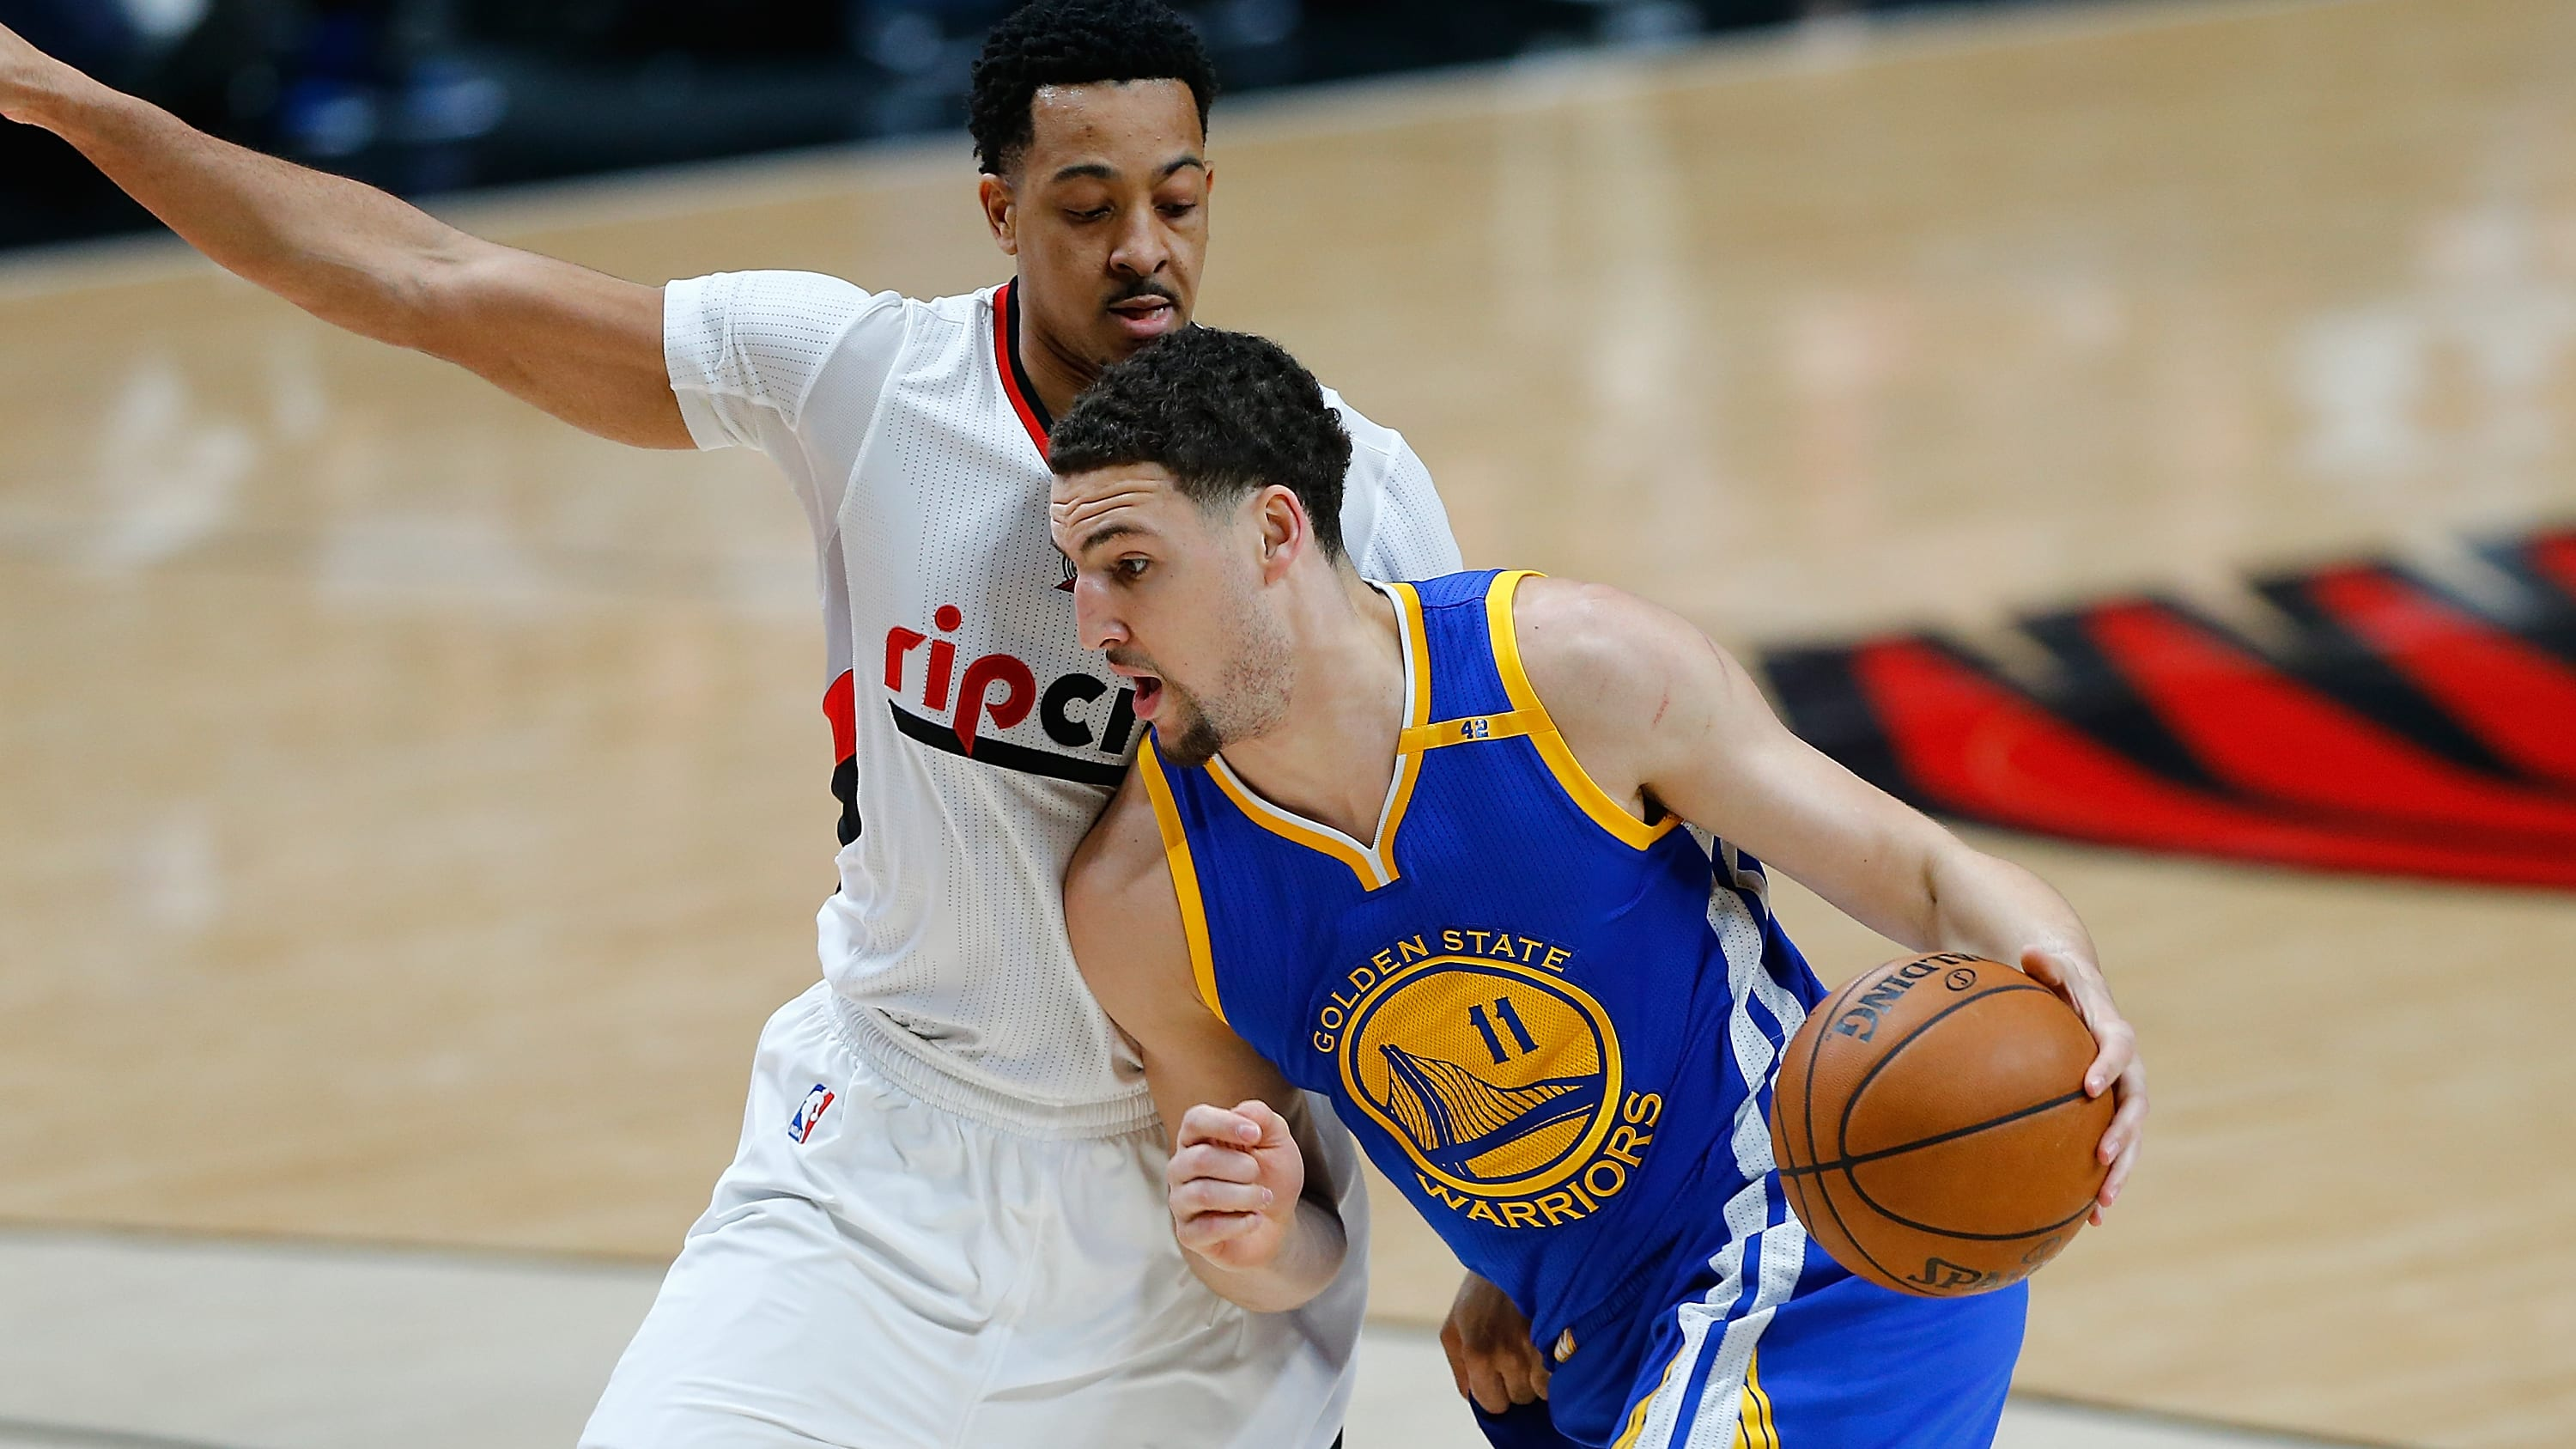 PORTLAND, OR - APRIL 24:  Klay Thompson #11 of the Golden State Warriors drives against CJ McCollum #3 of the Portland Trail Blazers during Game Four of the Western Conference Quarterfinals of  the 2017 NBA Playoffs at Moda Center on April 24, 2017 in Portland, Oregon.  NOTE TO USER: User expressly acknowledges and agrees that, by downloading and or using this photograph, User is consenting to the terms and conditions of the Getty Images License Agreement.  (Photo by Jonathan Ferrey/Getty Images)